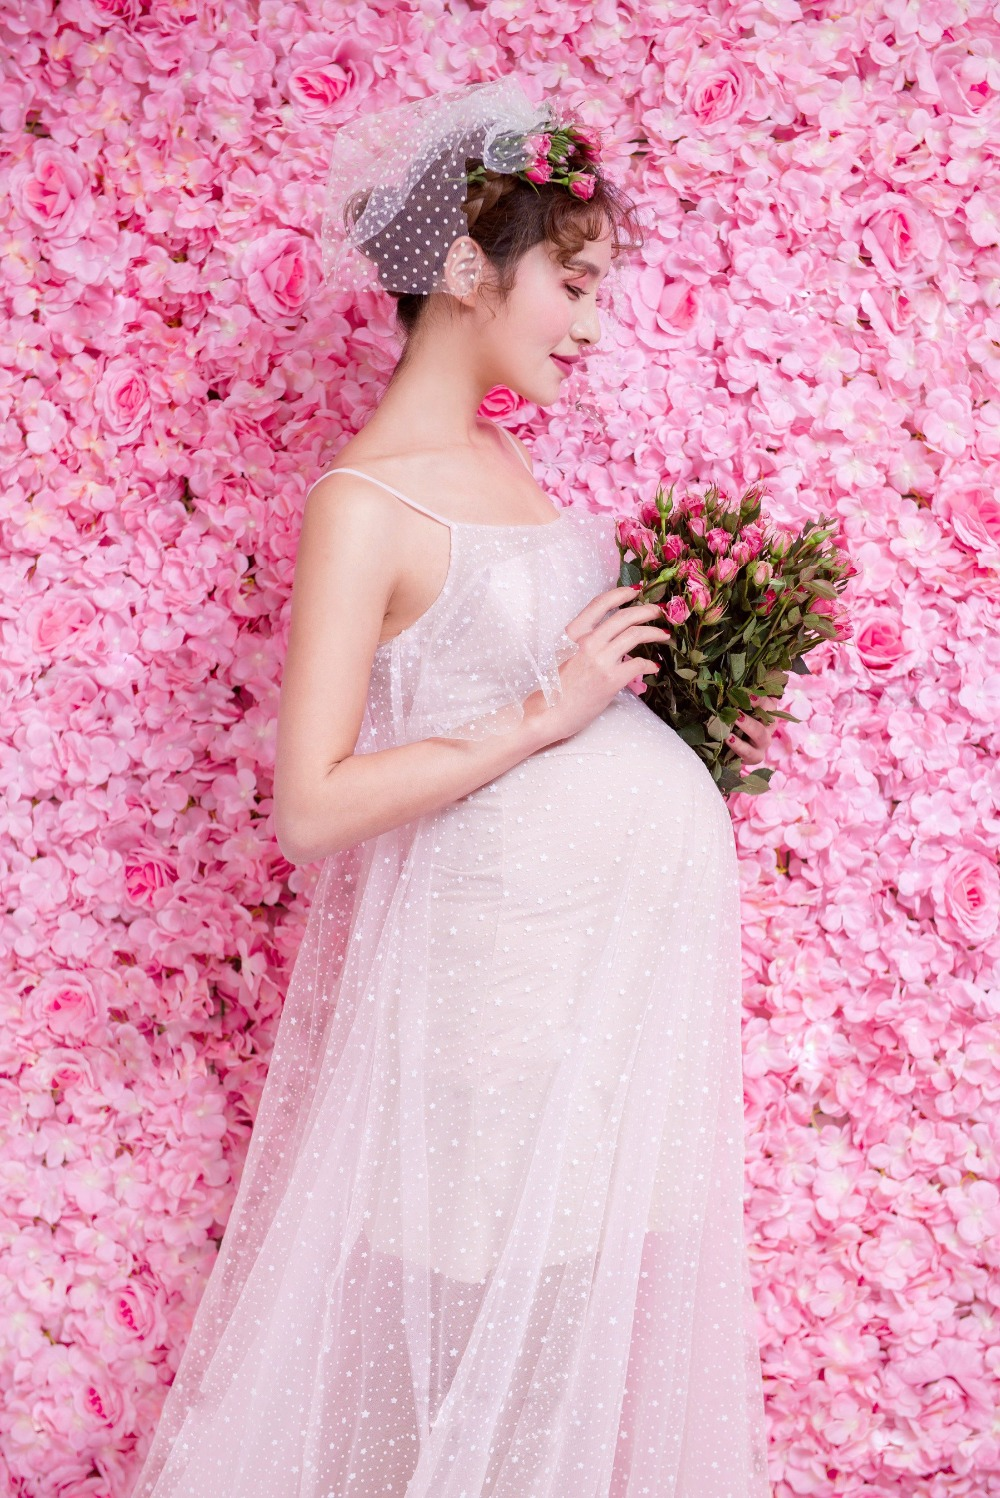 NEW Pregnant Maternity Women Photography Fashion Props White Sleeveless Dress Romatic Fancy Baby Shower Free shipping maternity pregnant women photography fashion props long dress white romatic see through personal portrait nightdress size s l